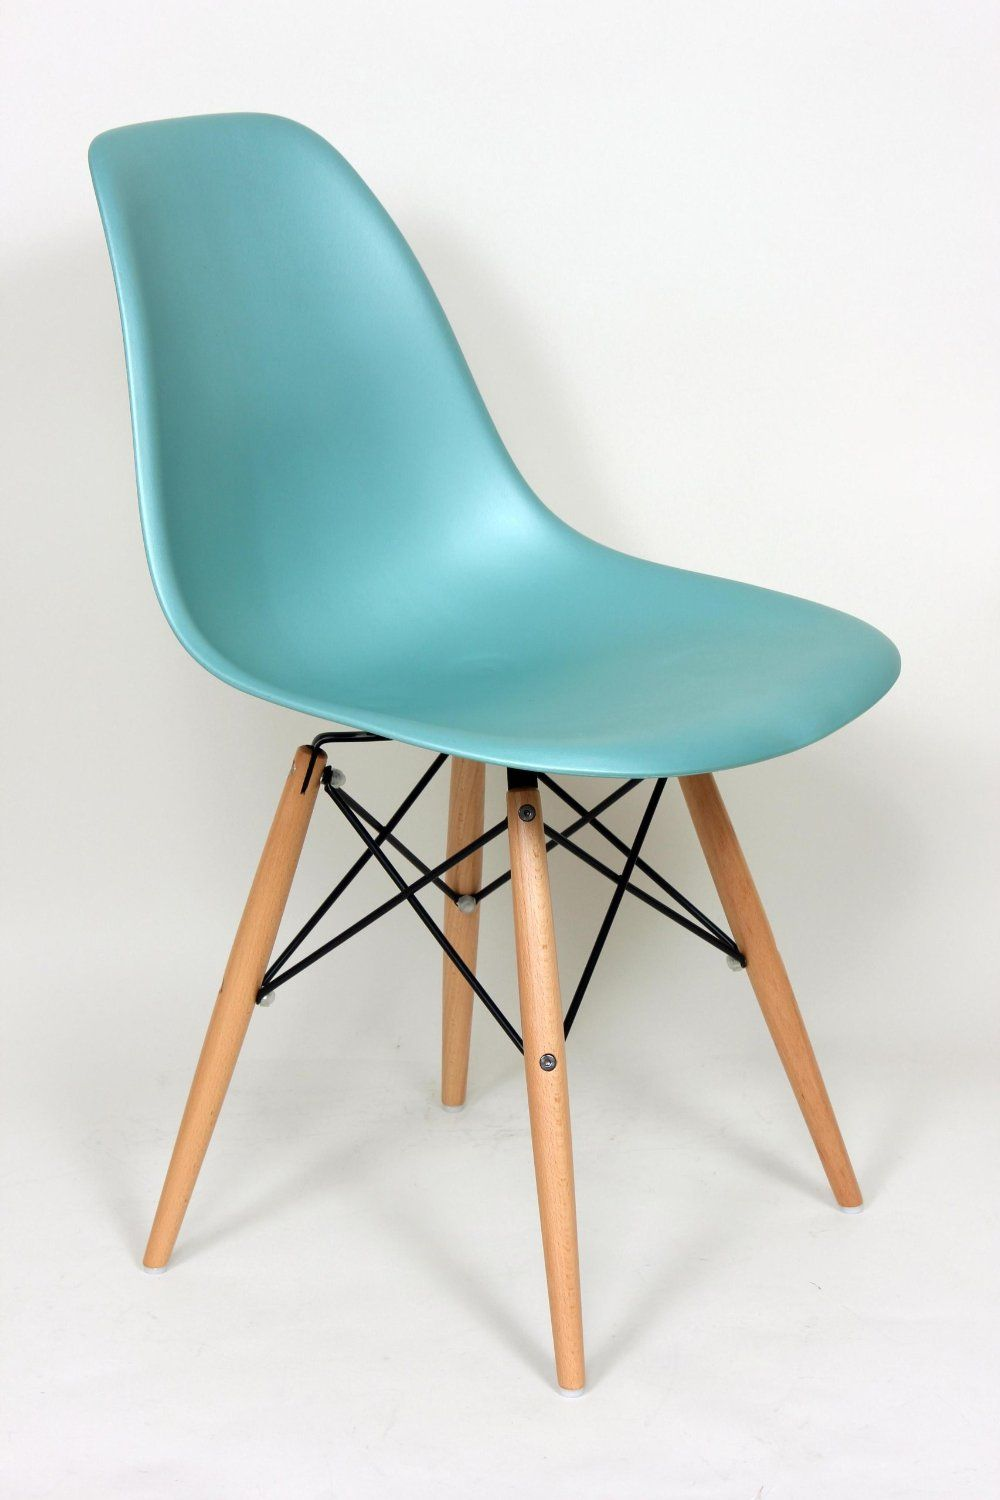 Amazon.com - Silver Blue Eames Style DSW Mid Century Plastic Molded ...